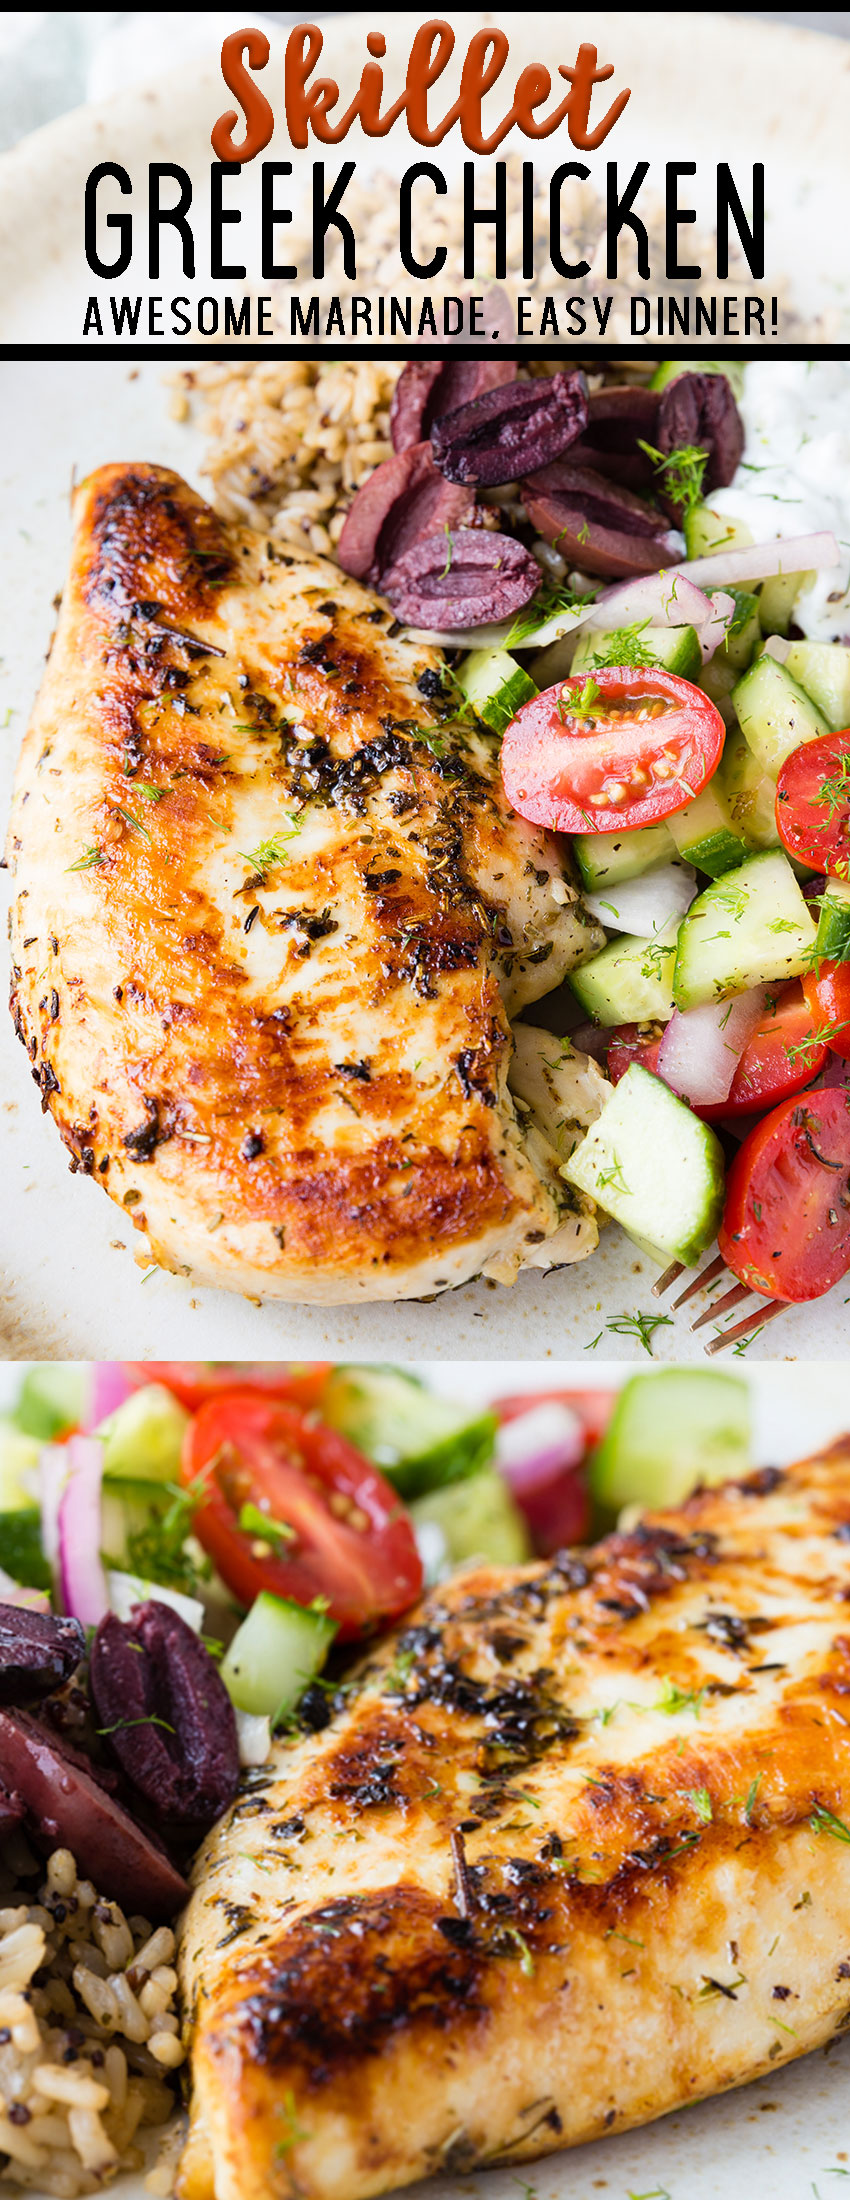 Skillet greek chicken, chicken marinated in a lovely combo of mediterranean flavors and seared to perfection stove top